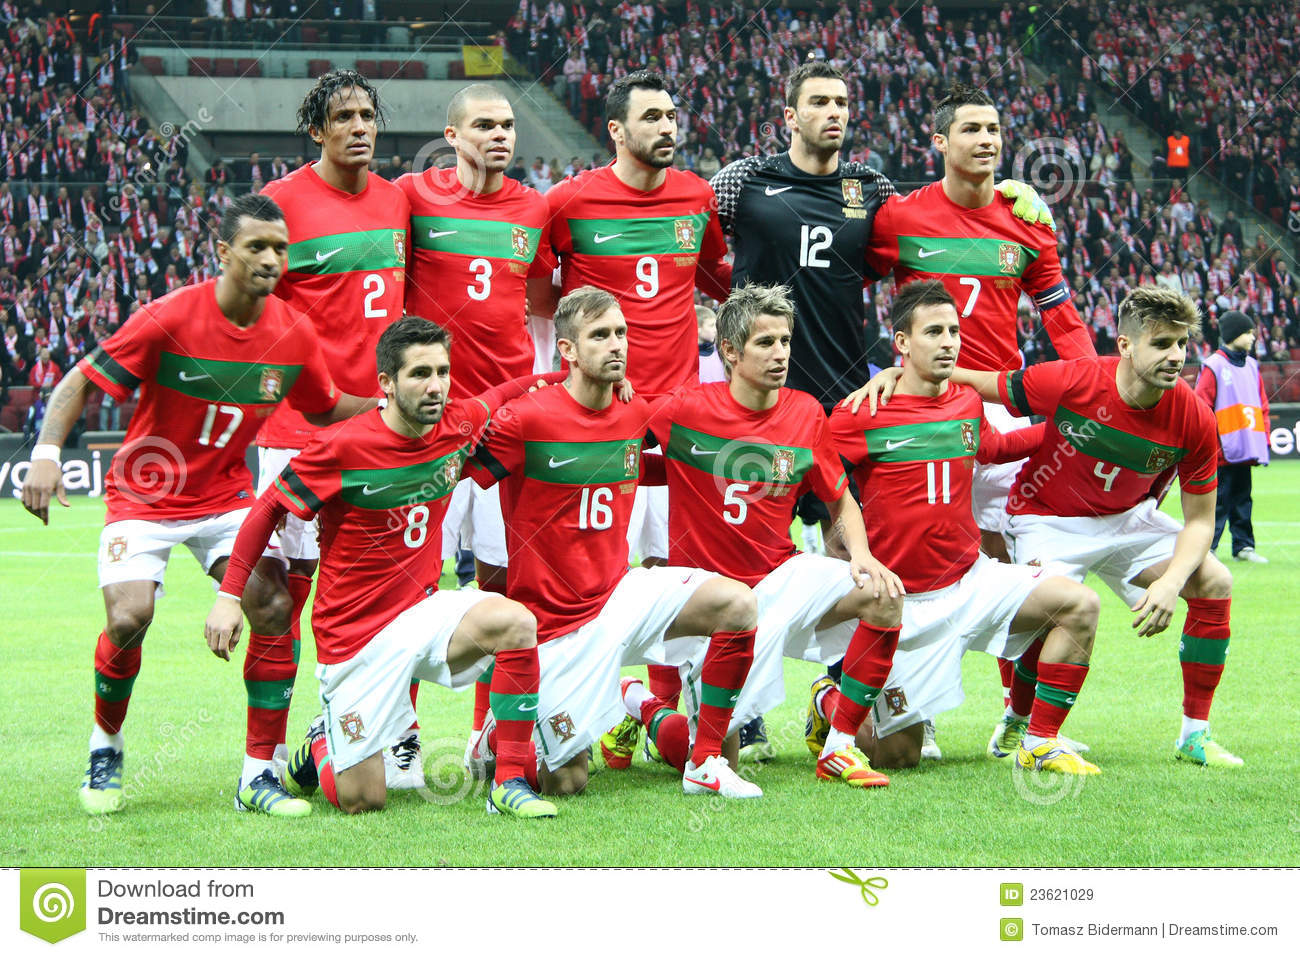 3b1f723d4c8 Portugal - National Football Team Editorial Stock Image - Image of ...